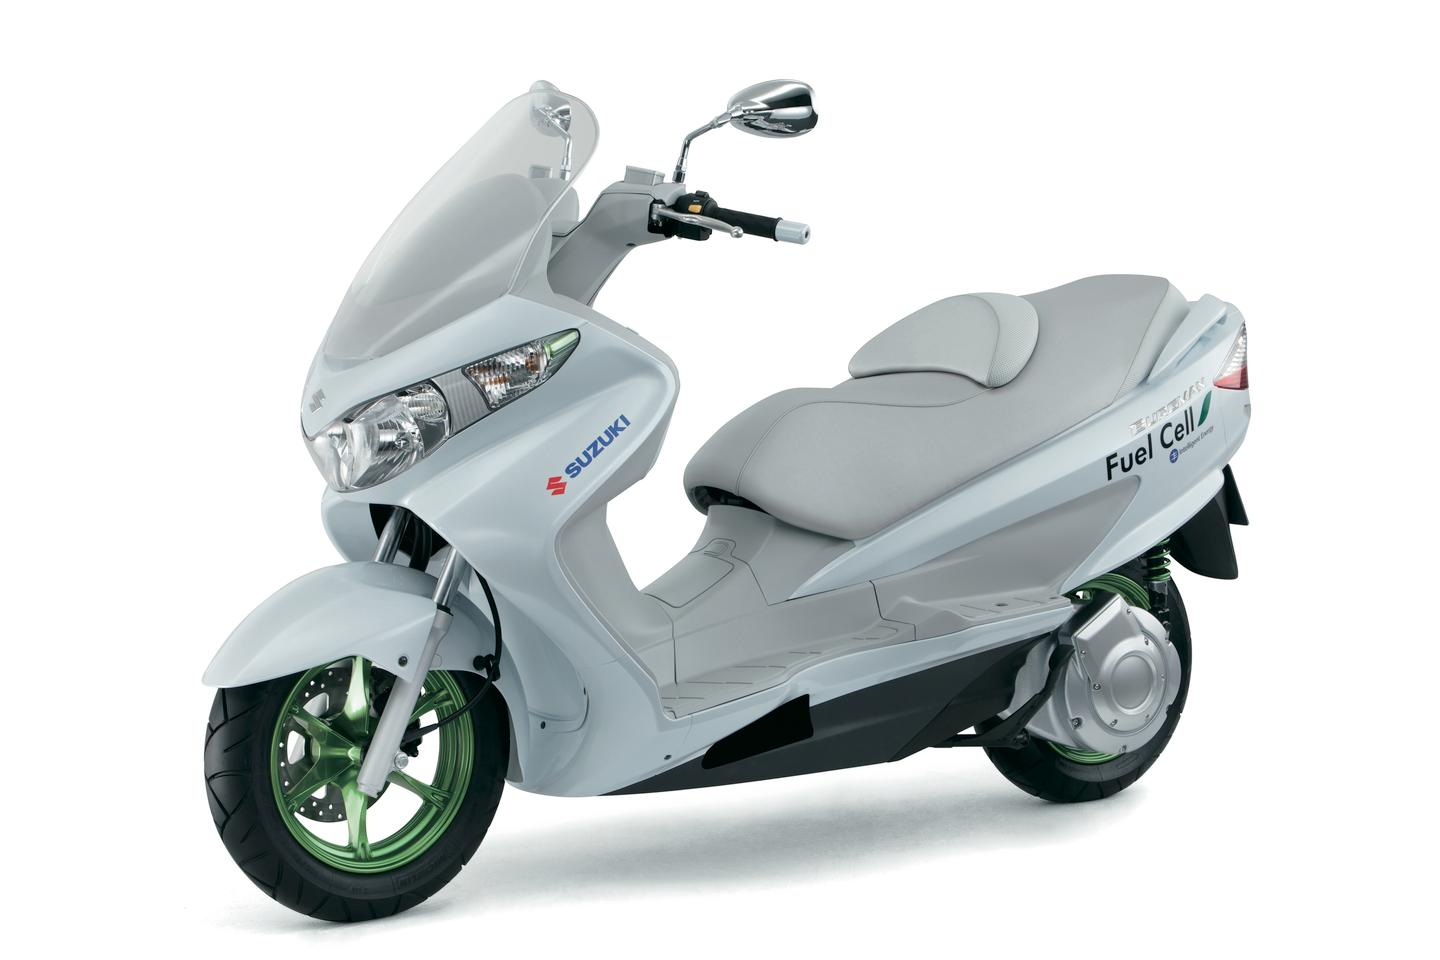 Suzuki's Burgman Fuel Cell Maxi-scooter